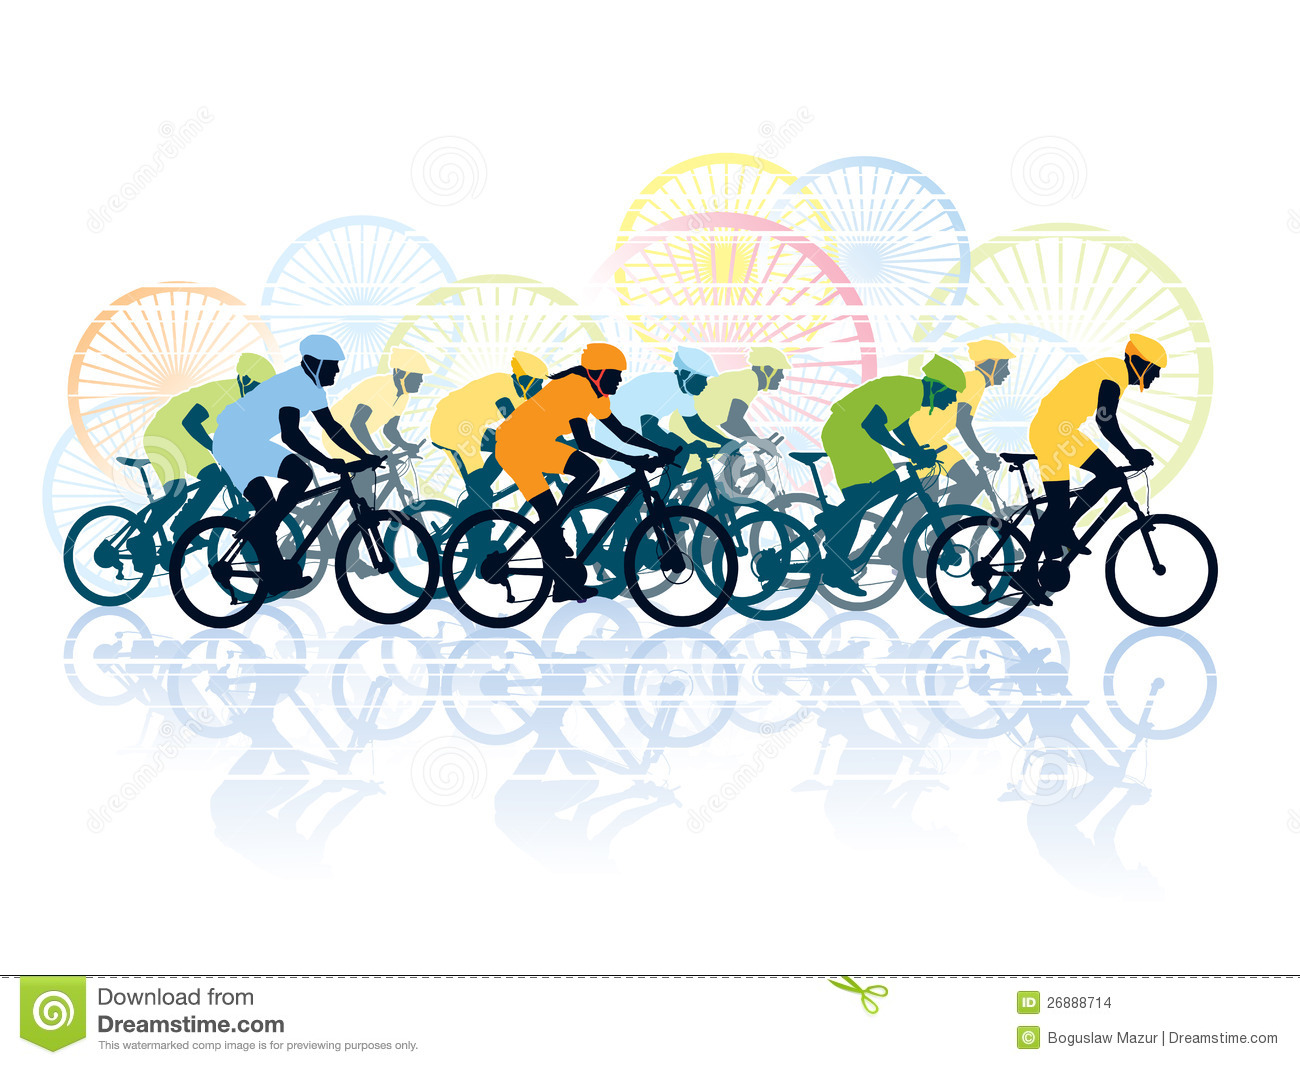 Bike Race Clipart - Clipart Kid